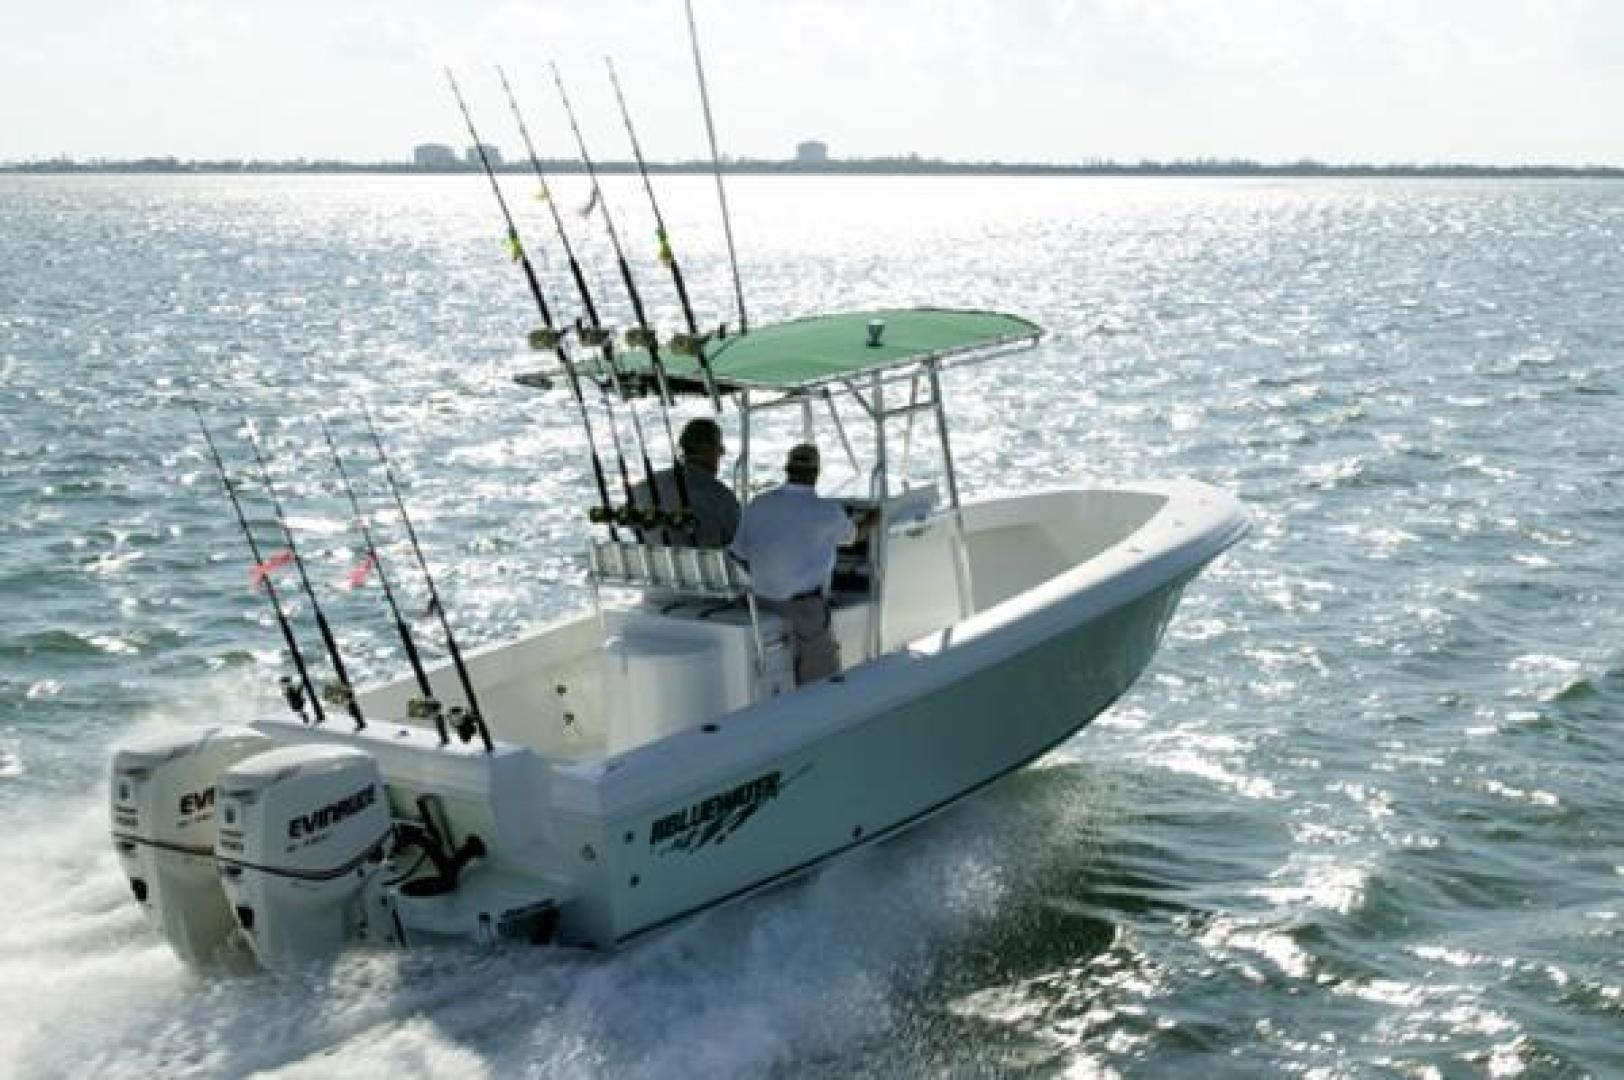 2021 Bluewater Sportfishing 22' 23t Bluewater Sportfishing 23t | Picture 2 of 7